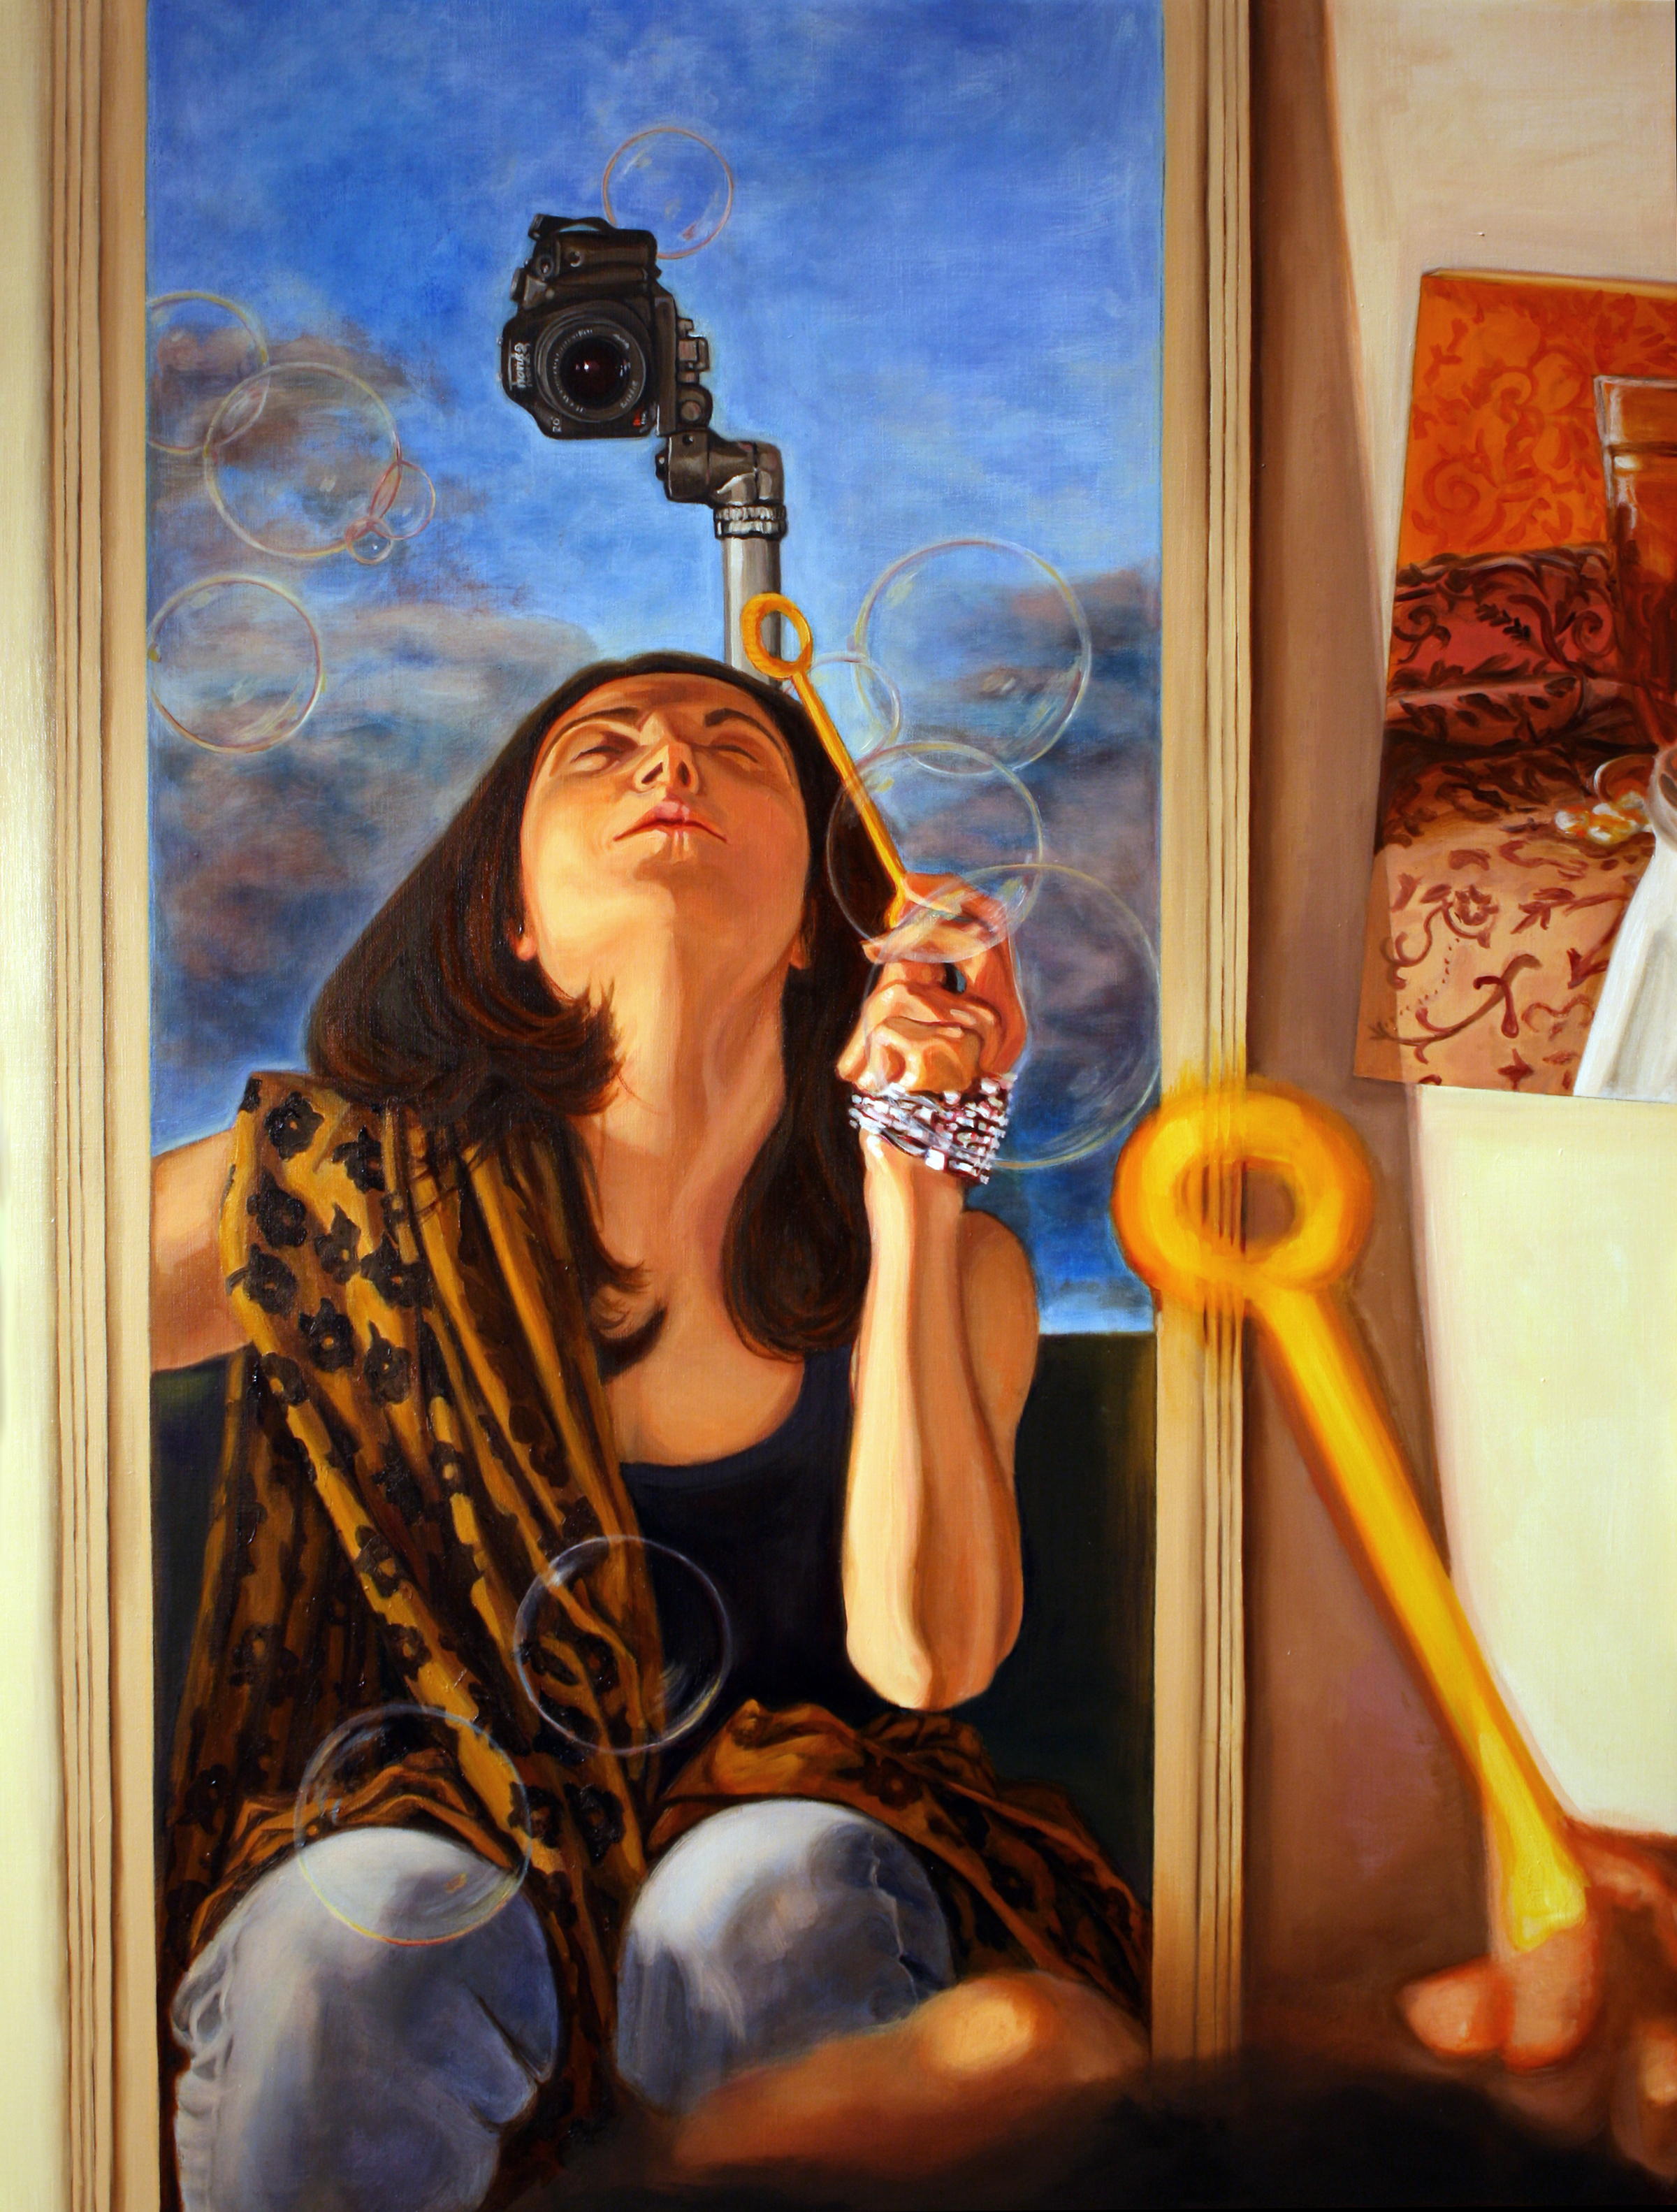 Self-Portrait with Bubbles © 2011 Oil on linen 34 x 26""